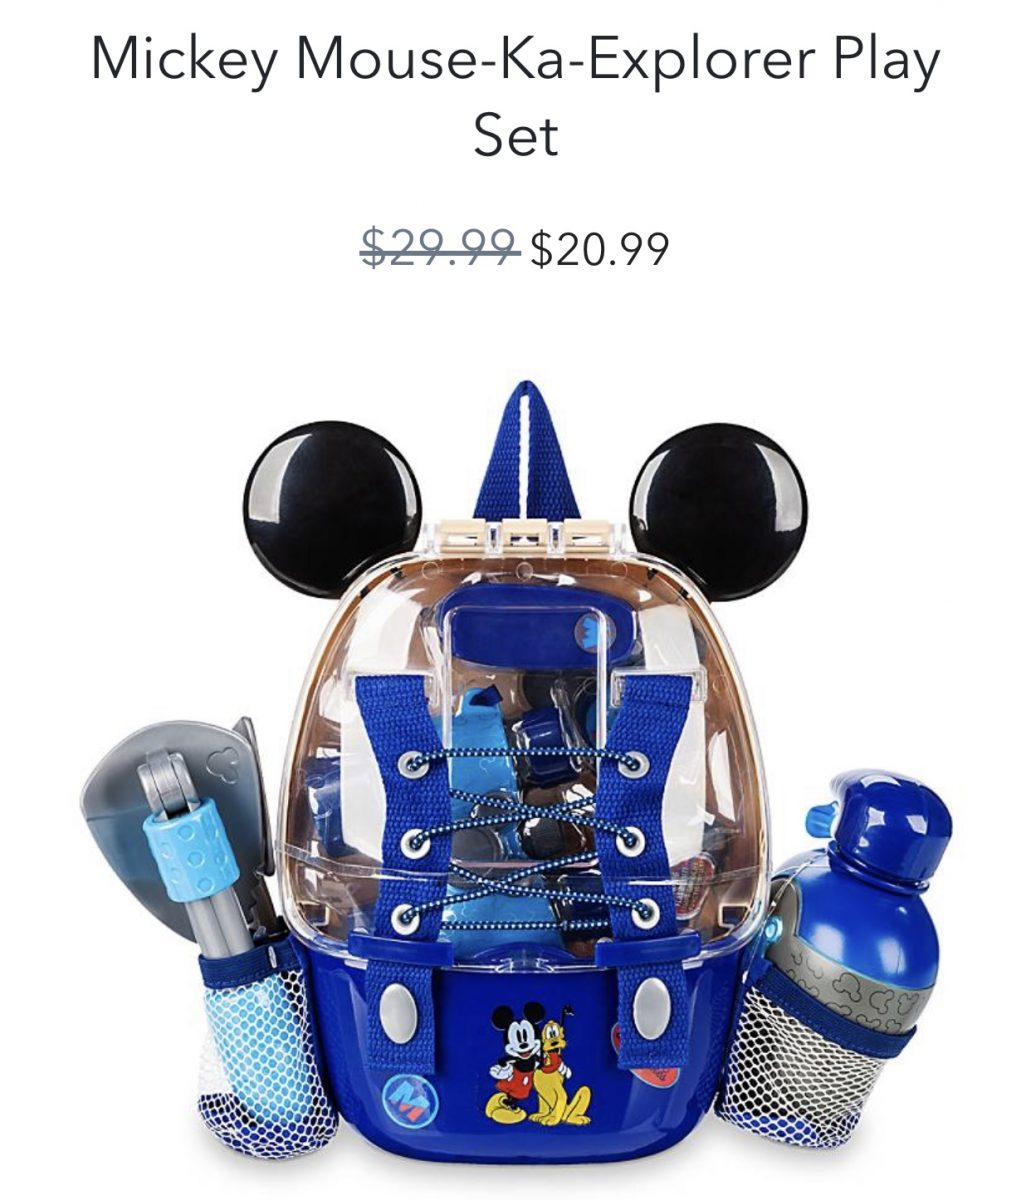 The Magic, The Memories, and Merch! – Disney Outlet Store Update for June 2020